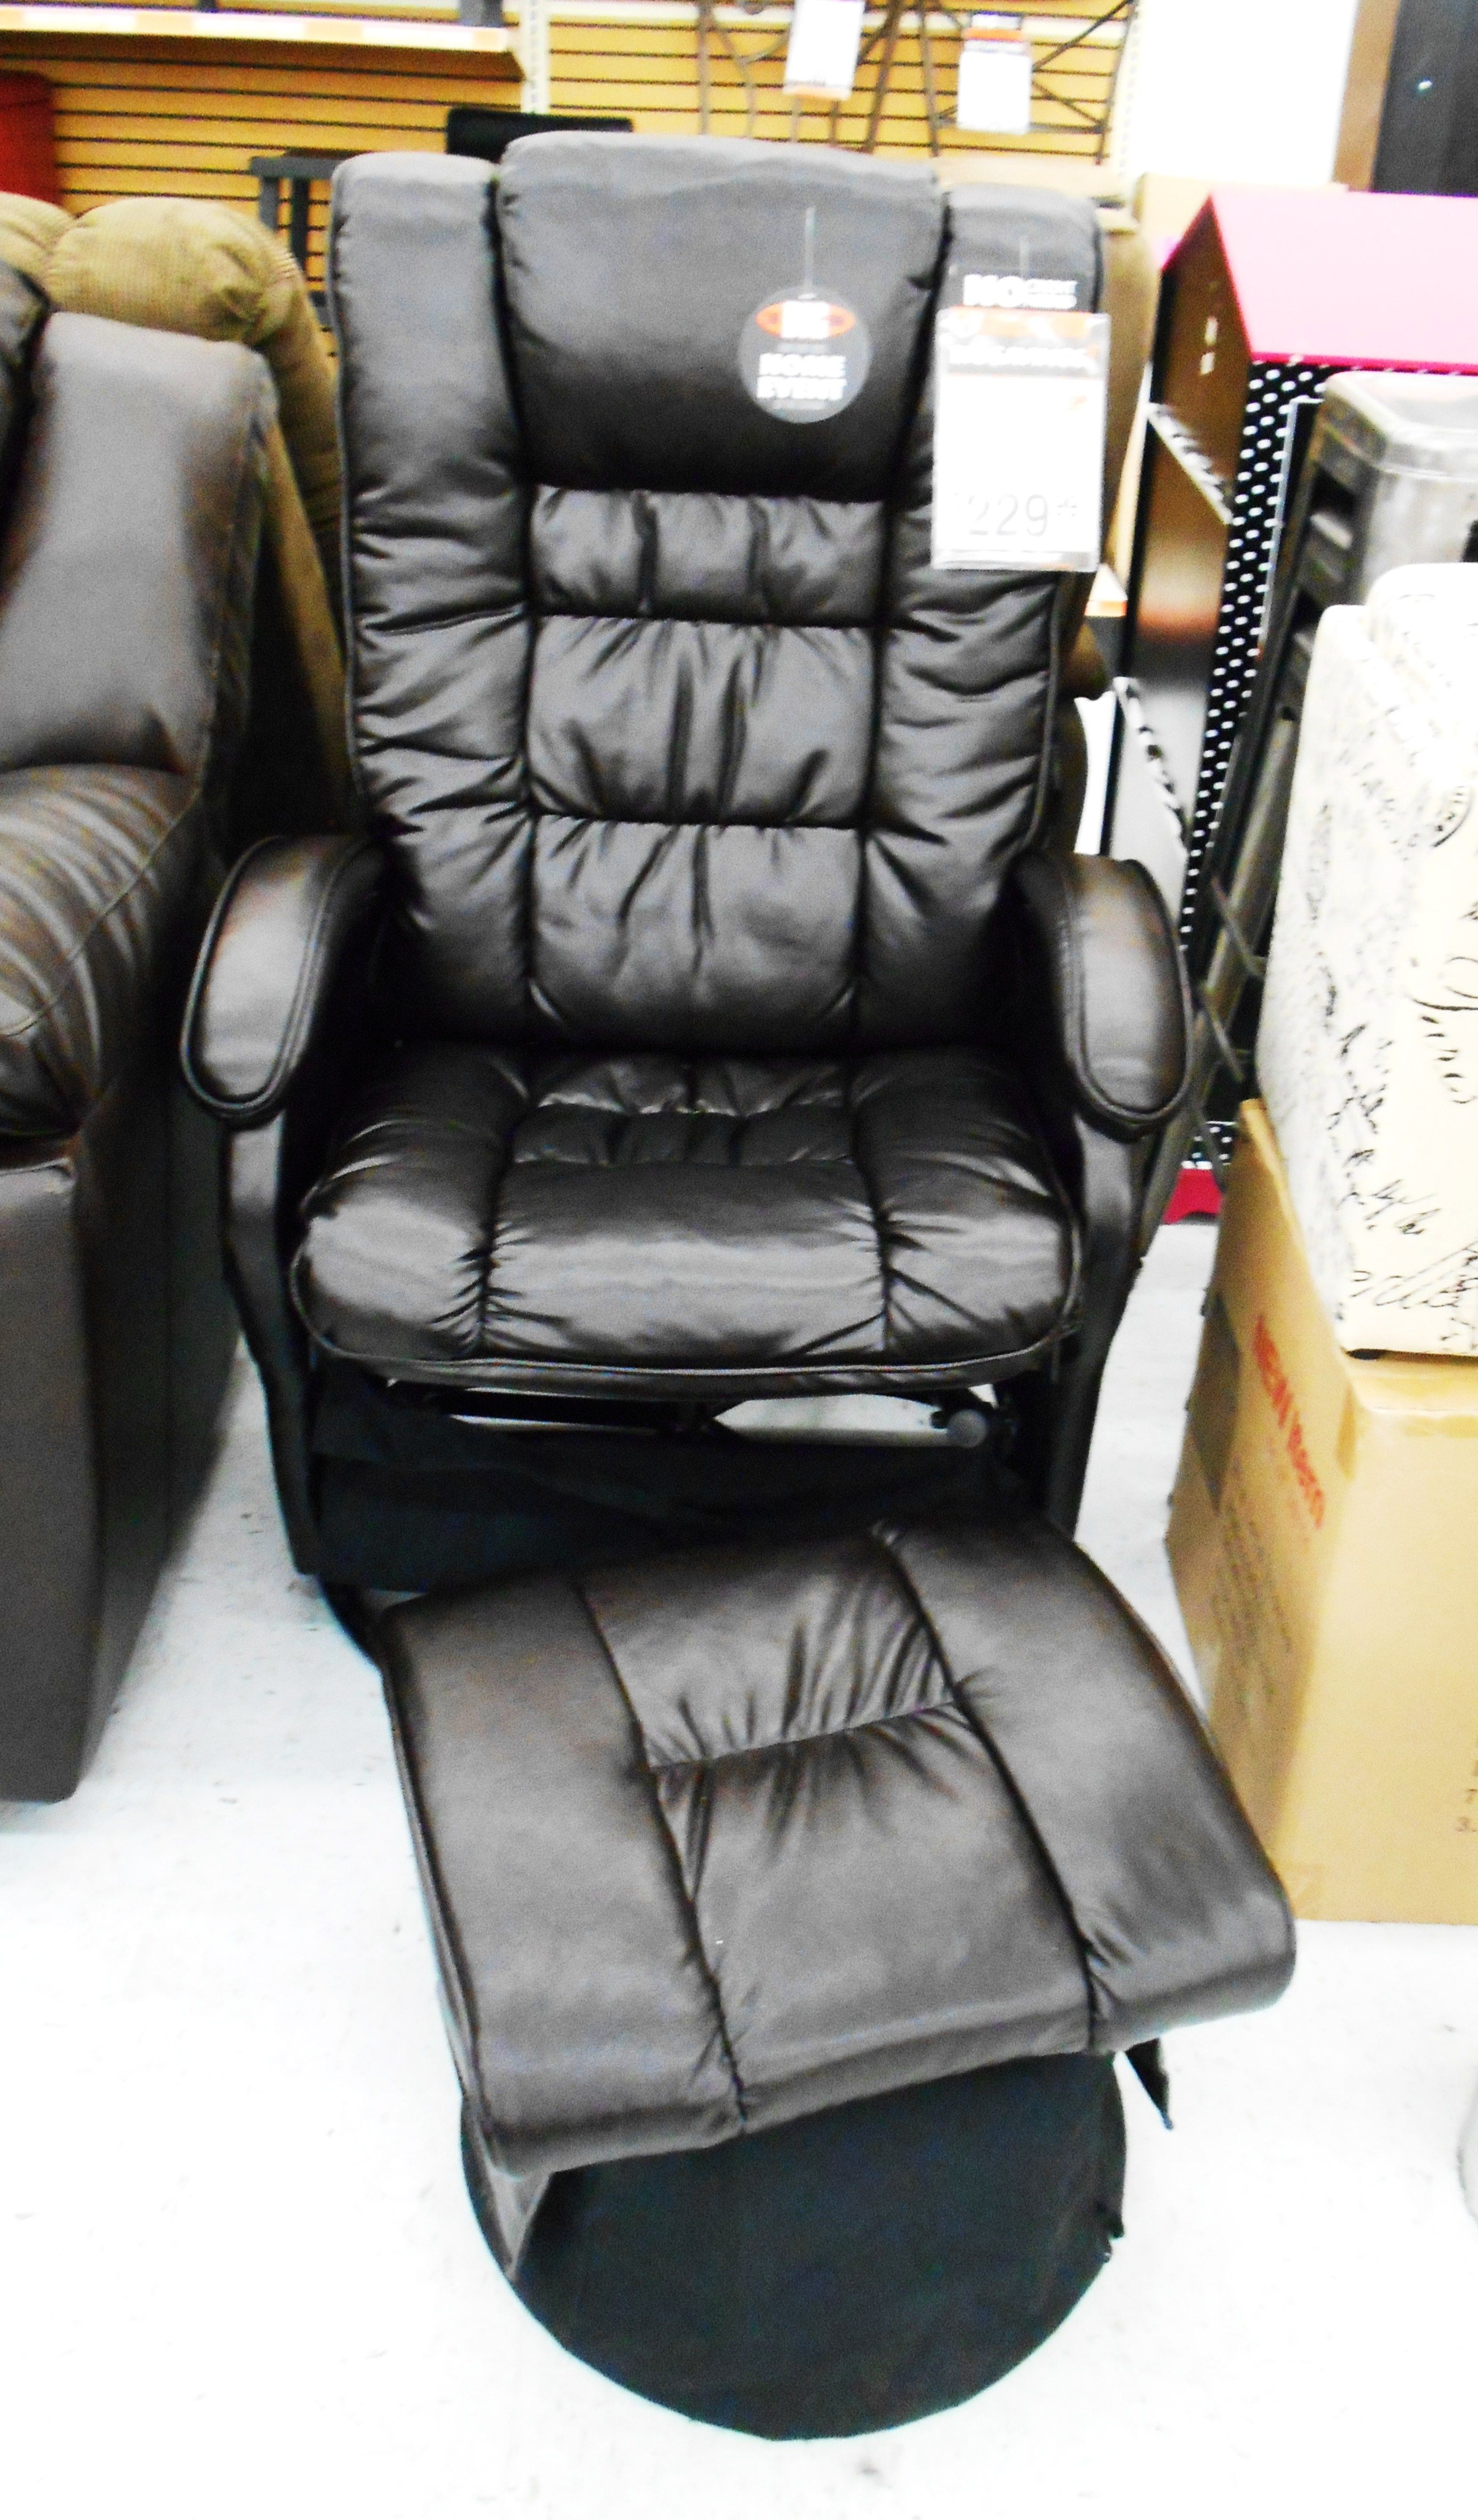 Fauxleather glider recliner with ottoman 22999 from big